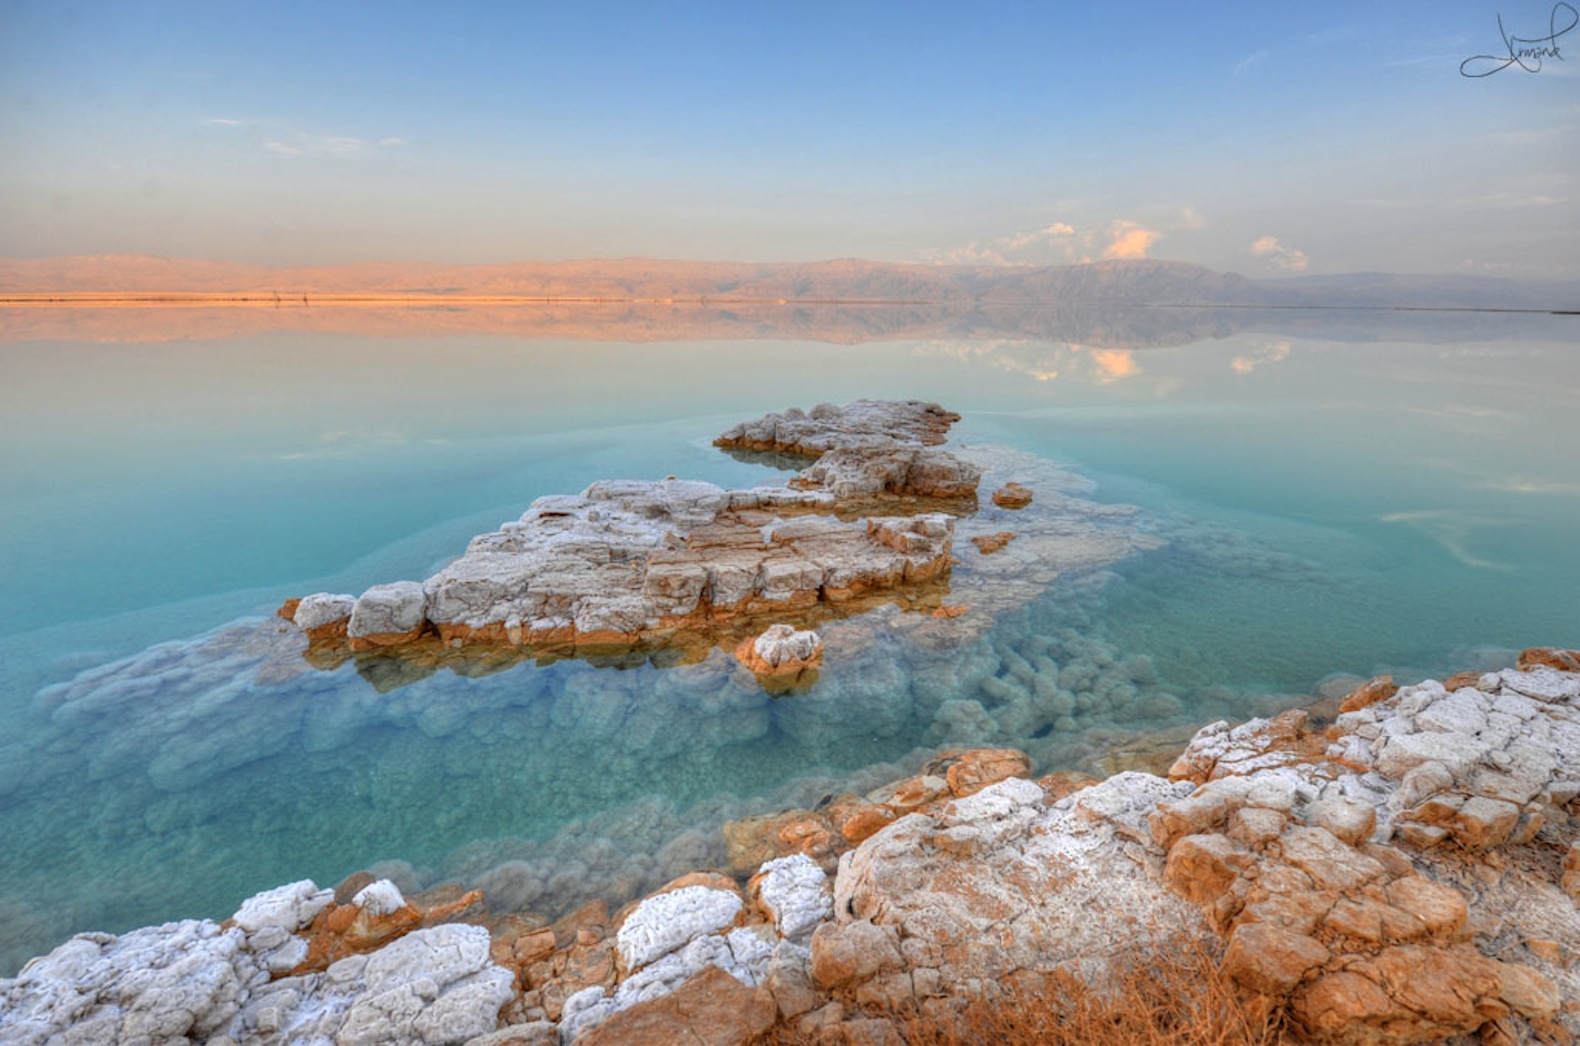 New chemical-free desalination tech helps bring water surplus to Israel